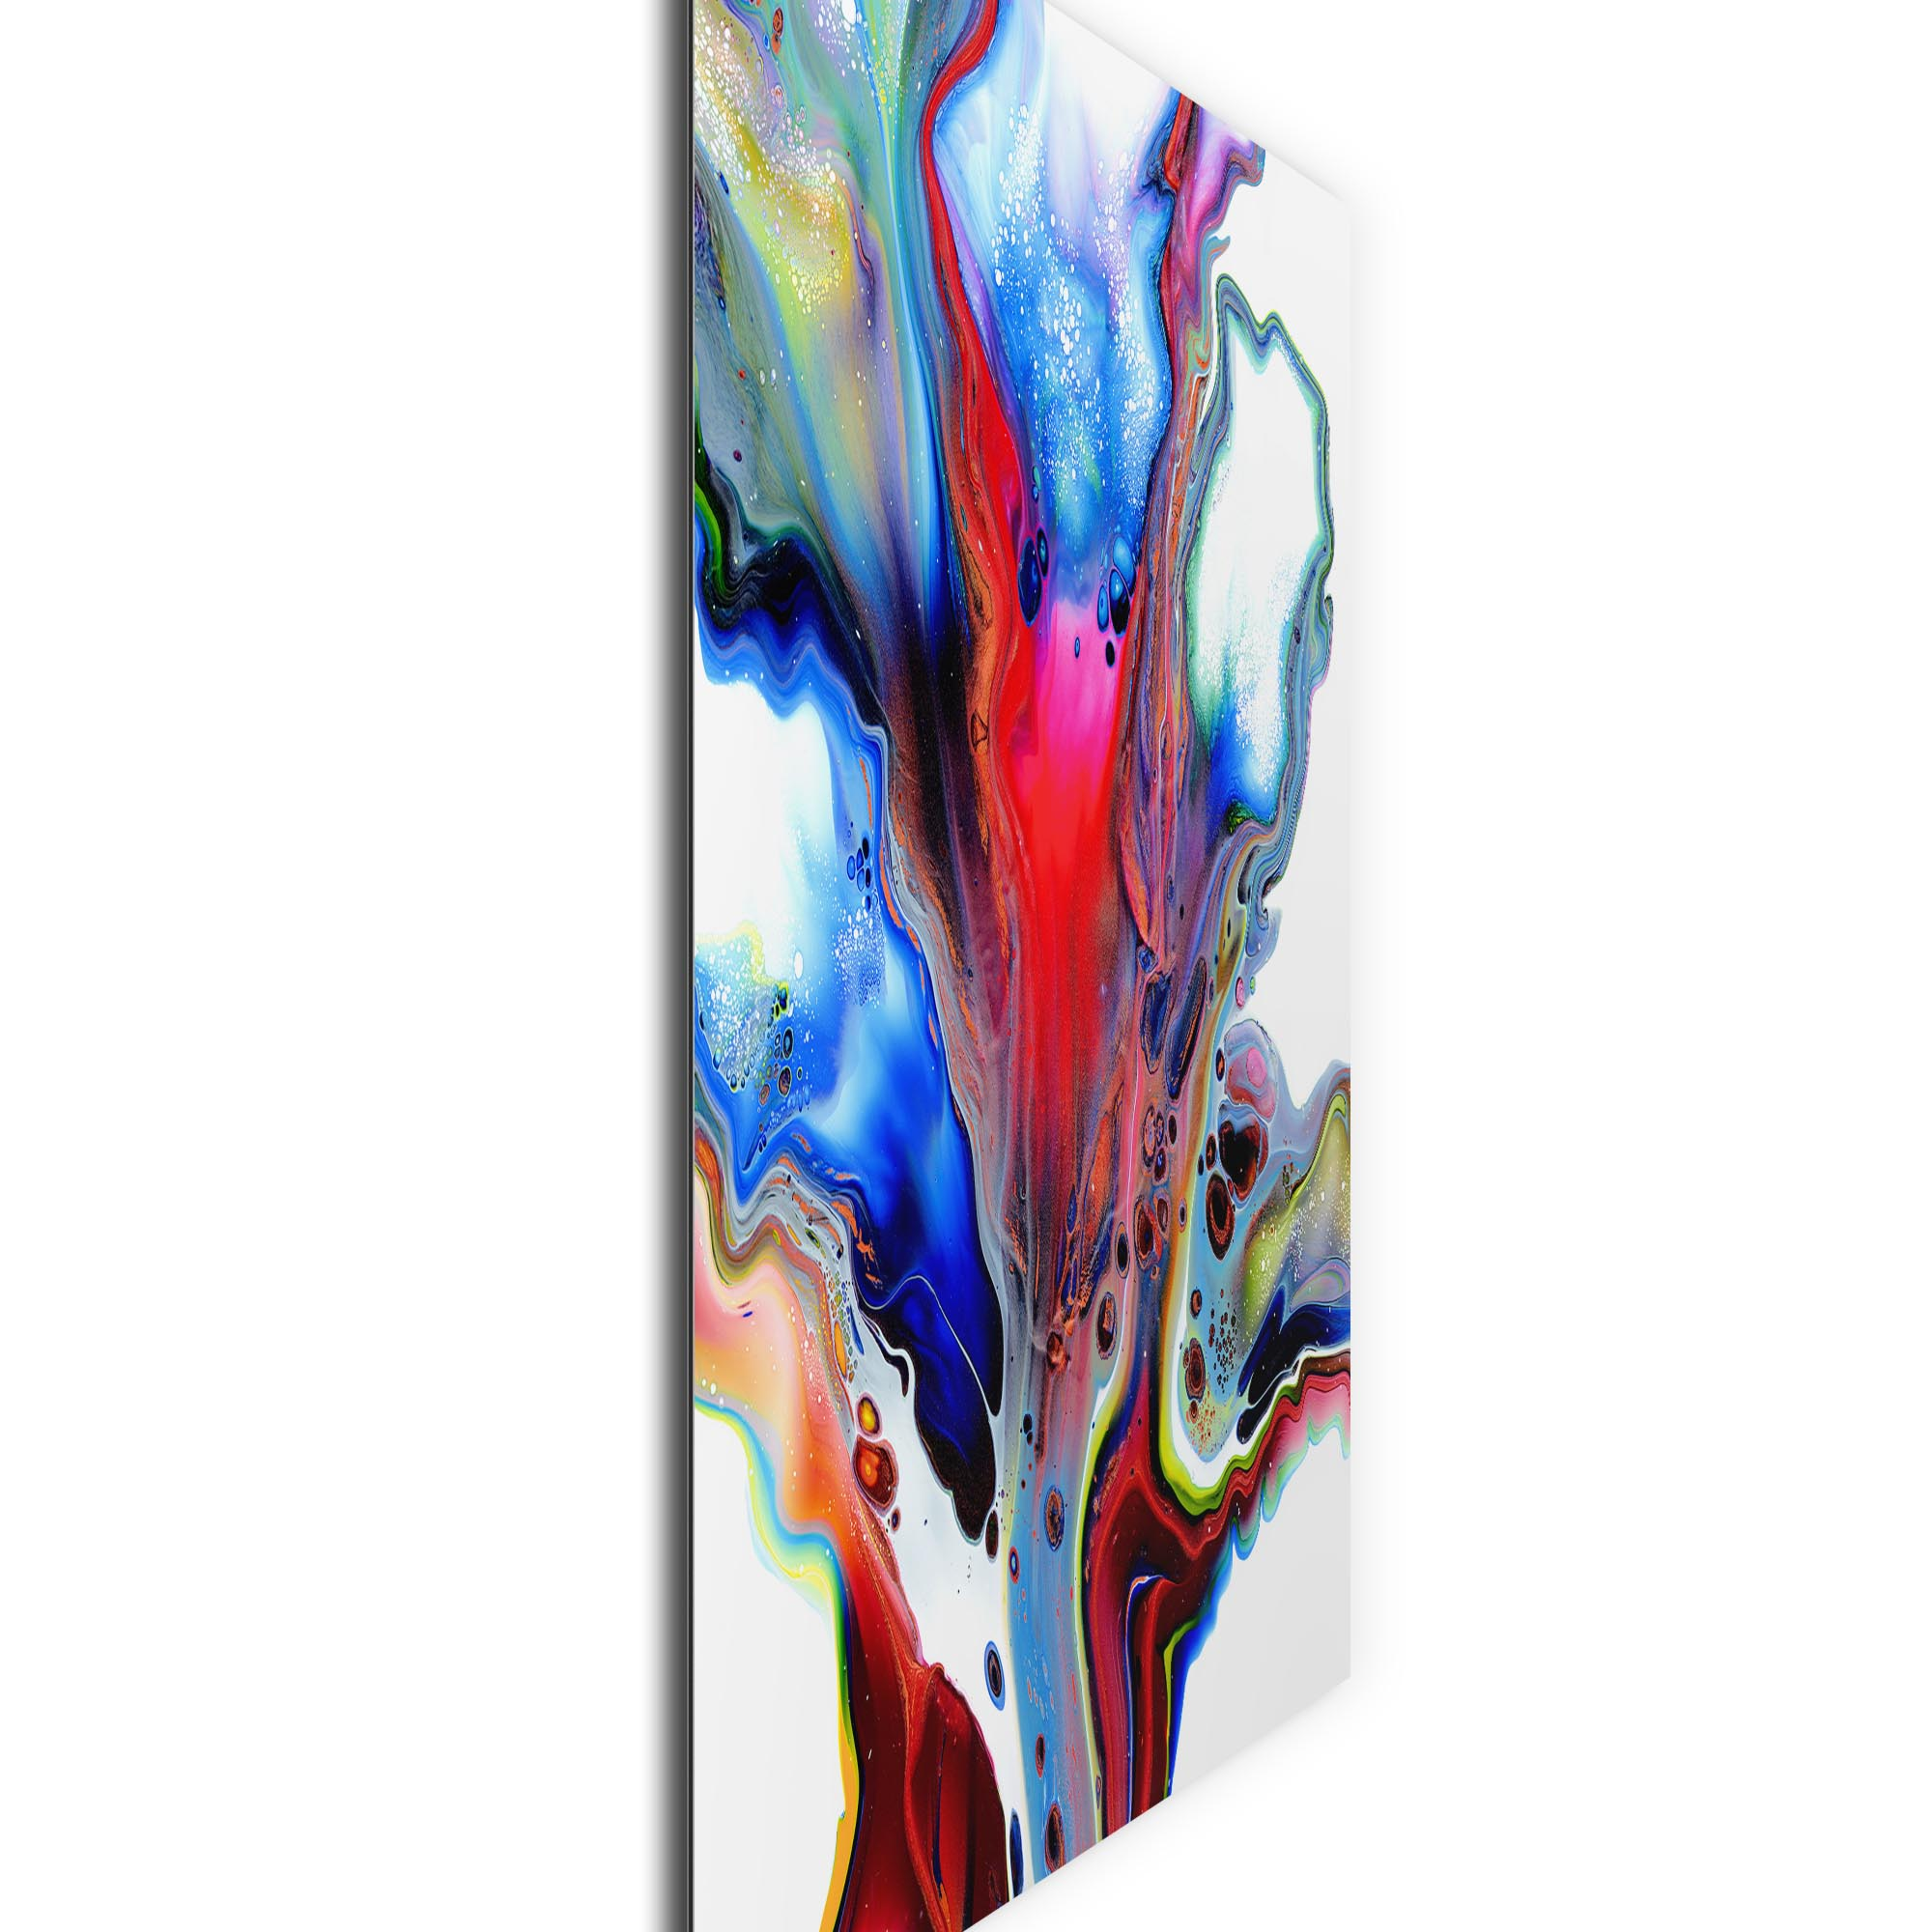 Emerging by Elana Reiter - Abstract Wall Art, Modern Home Decor (36in x 36in) - Image 2